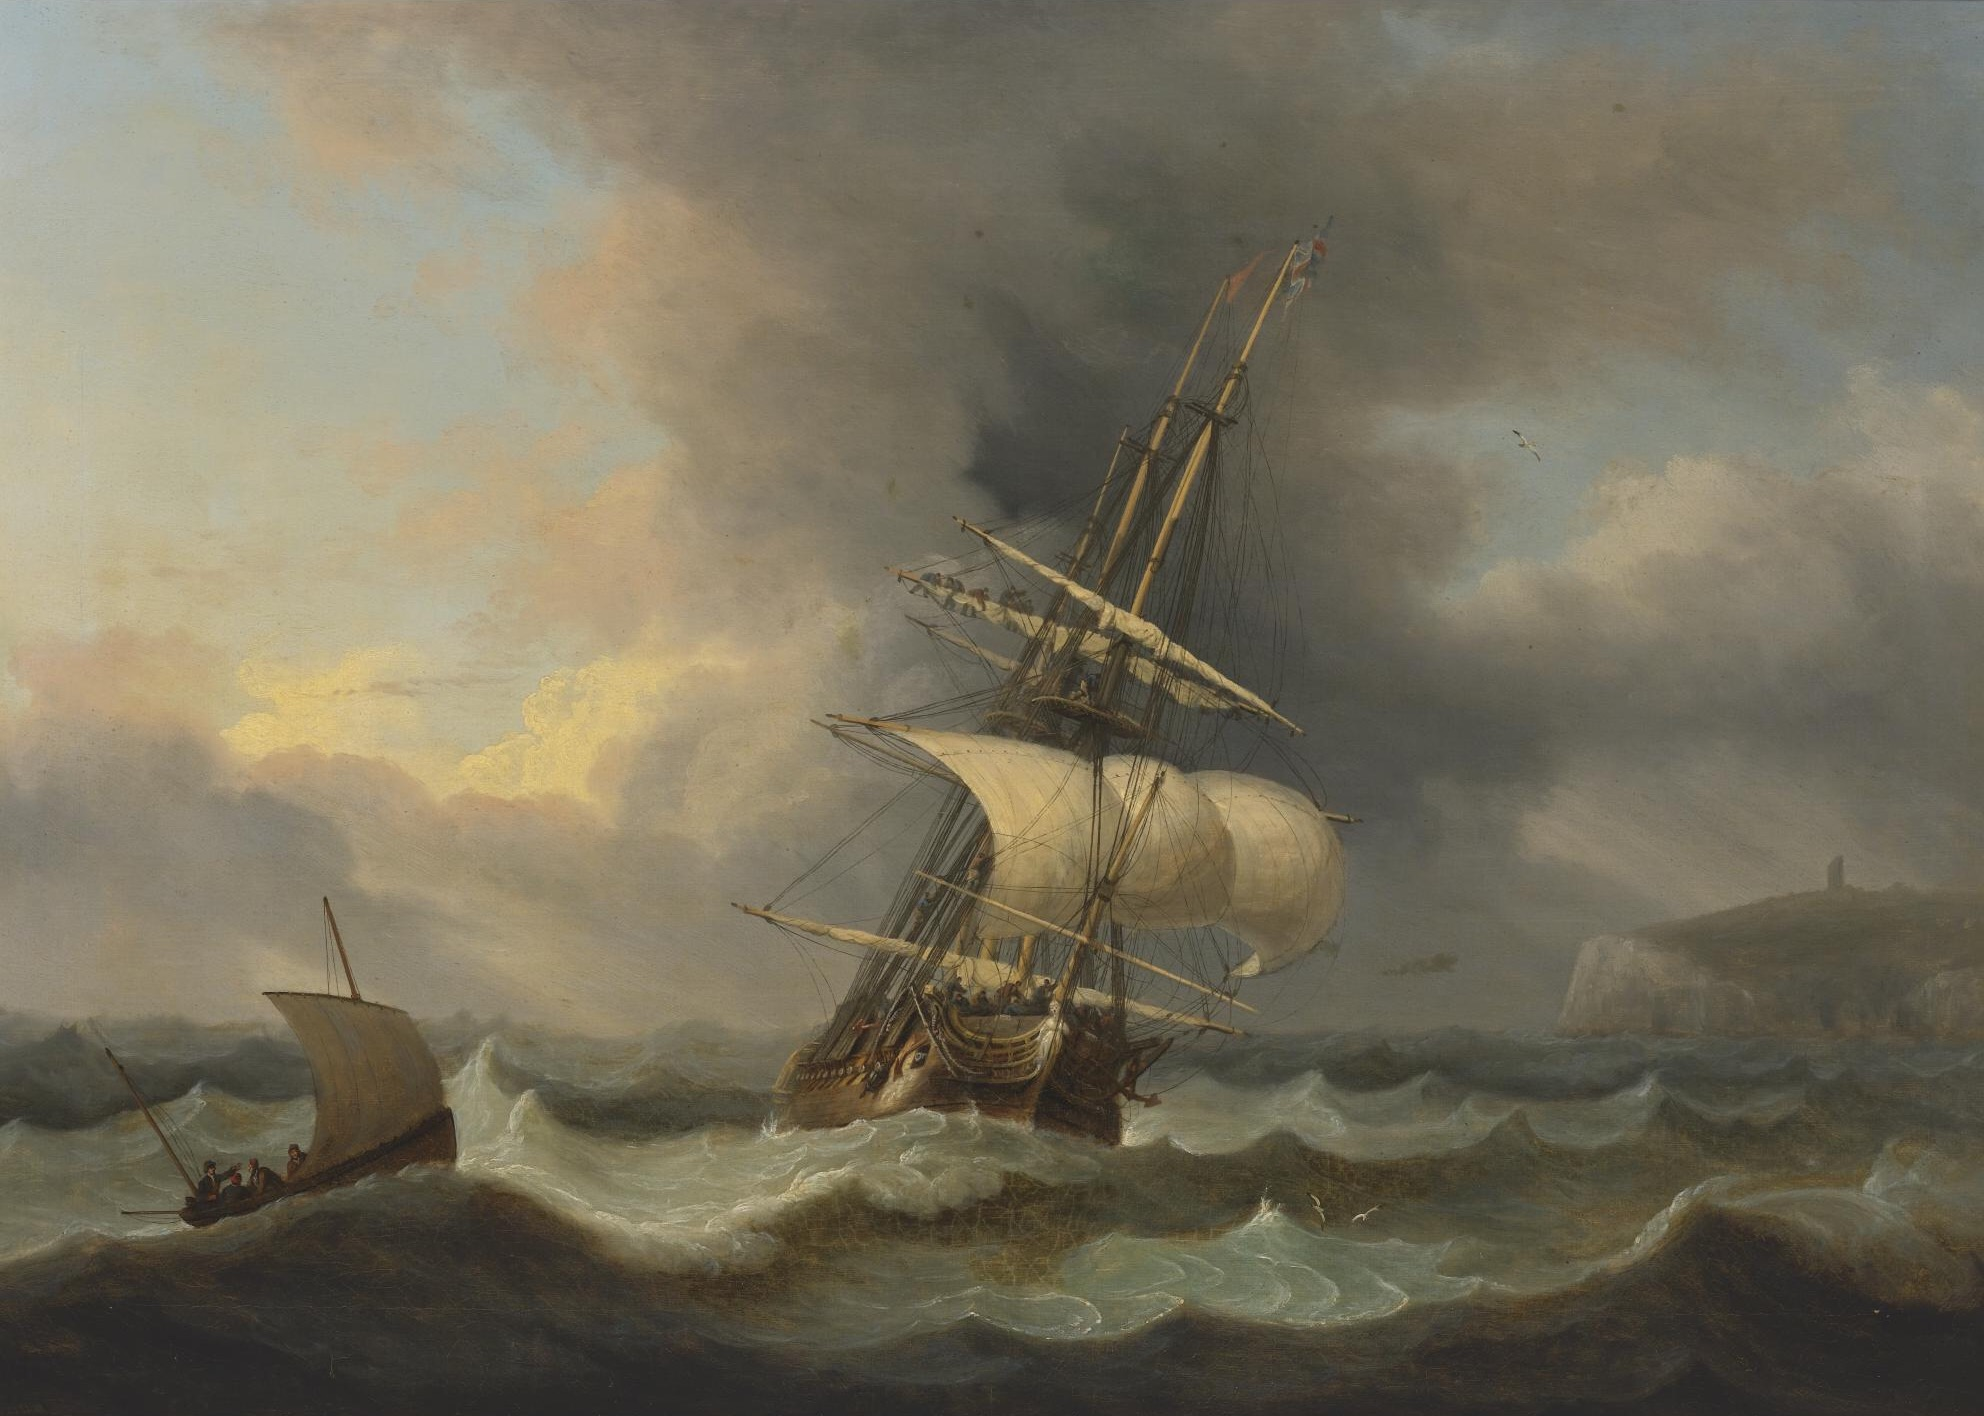 Shortening Sail Off South Foreland, by Thomas Luny, 1818